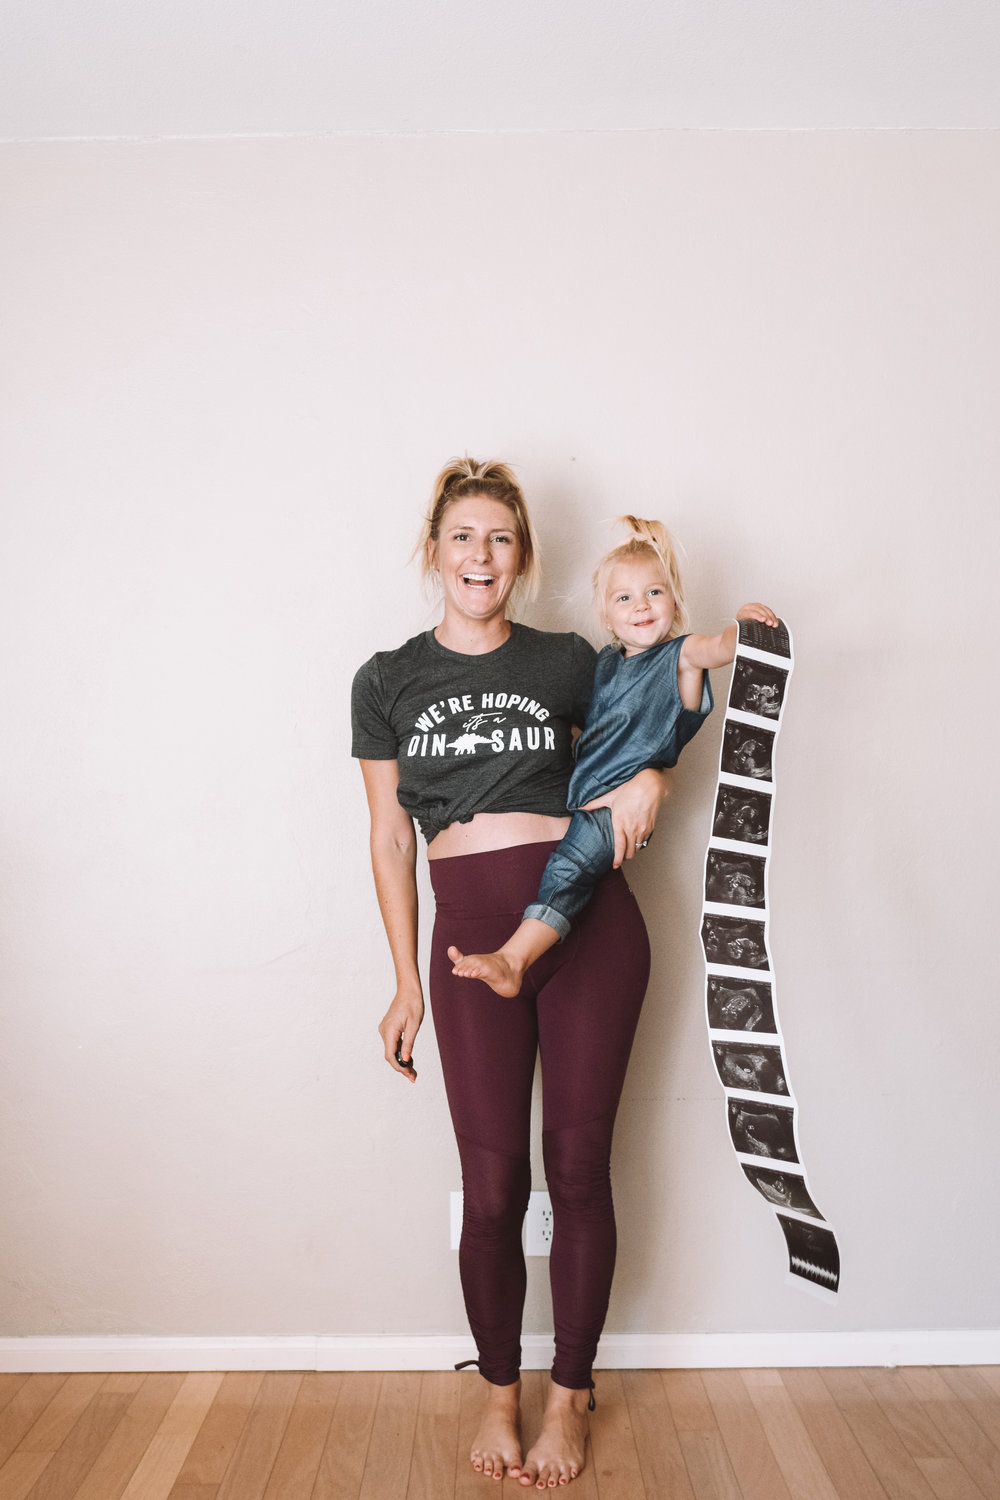 Pregnant Belly Week 12 | Funny Pregnancy Shirt of the Week — The ...